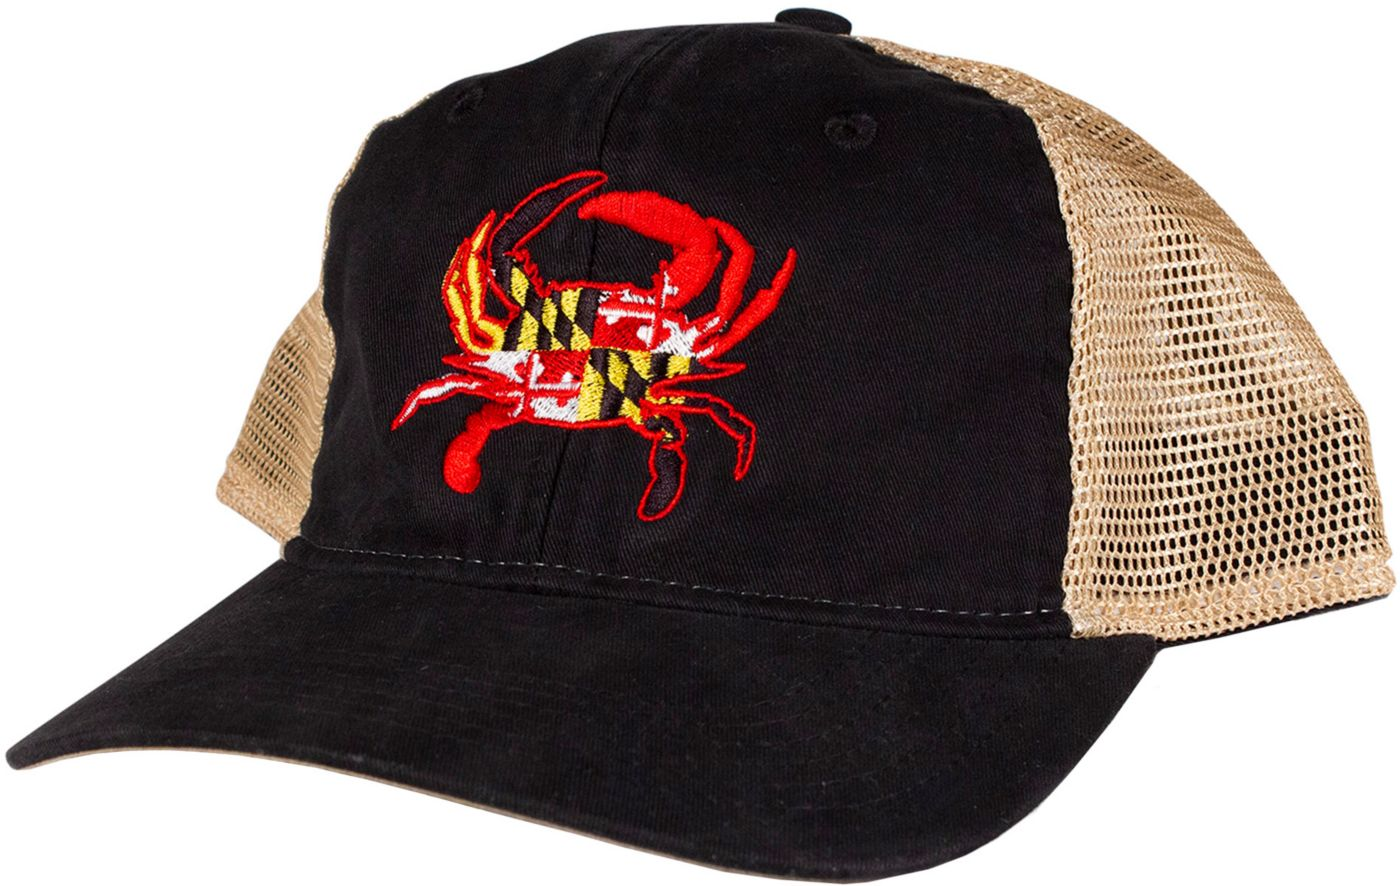 Home State Apparel Adult Maryland Crab Flag Hat